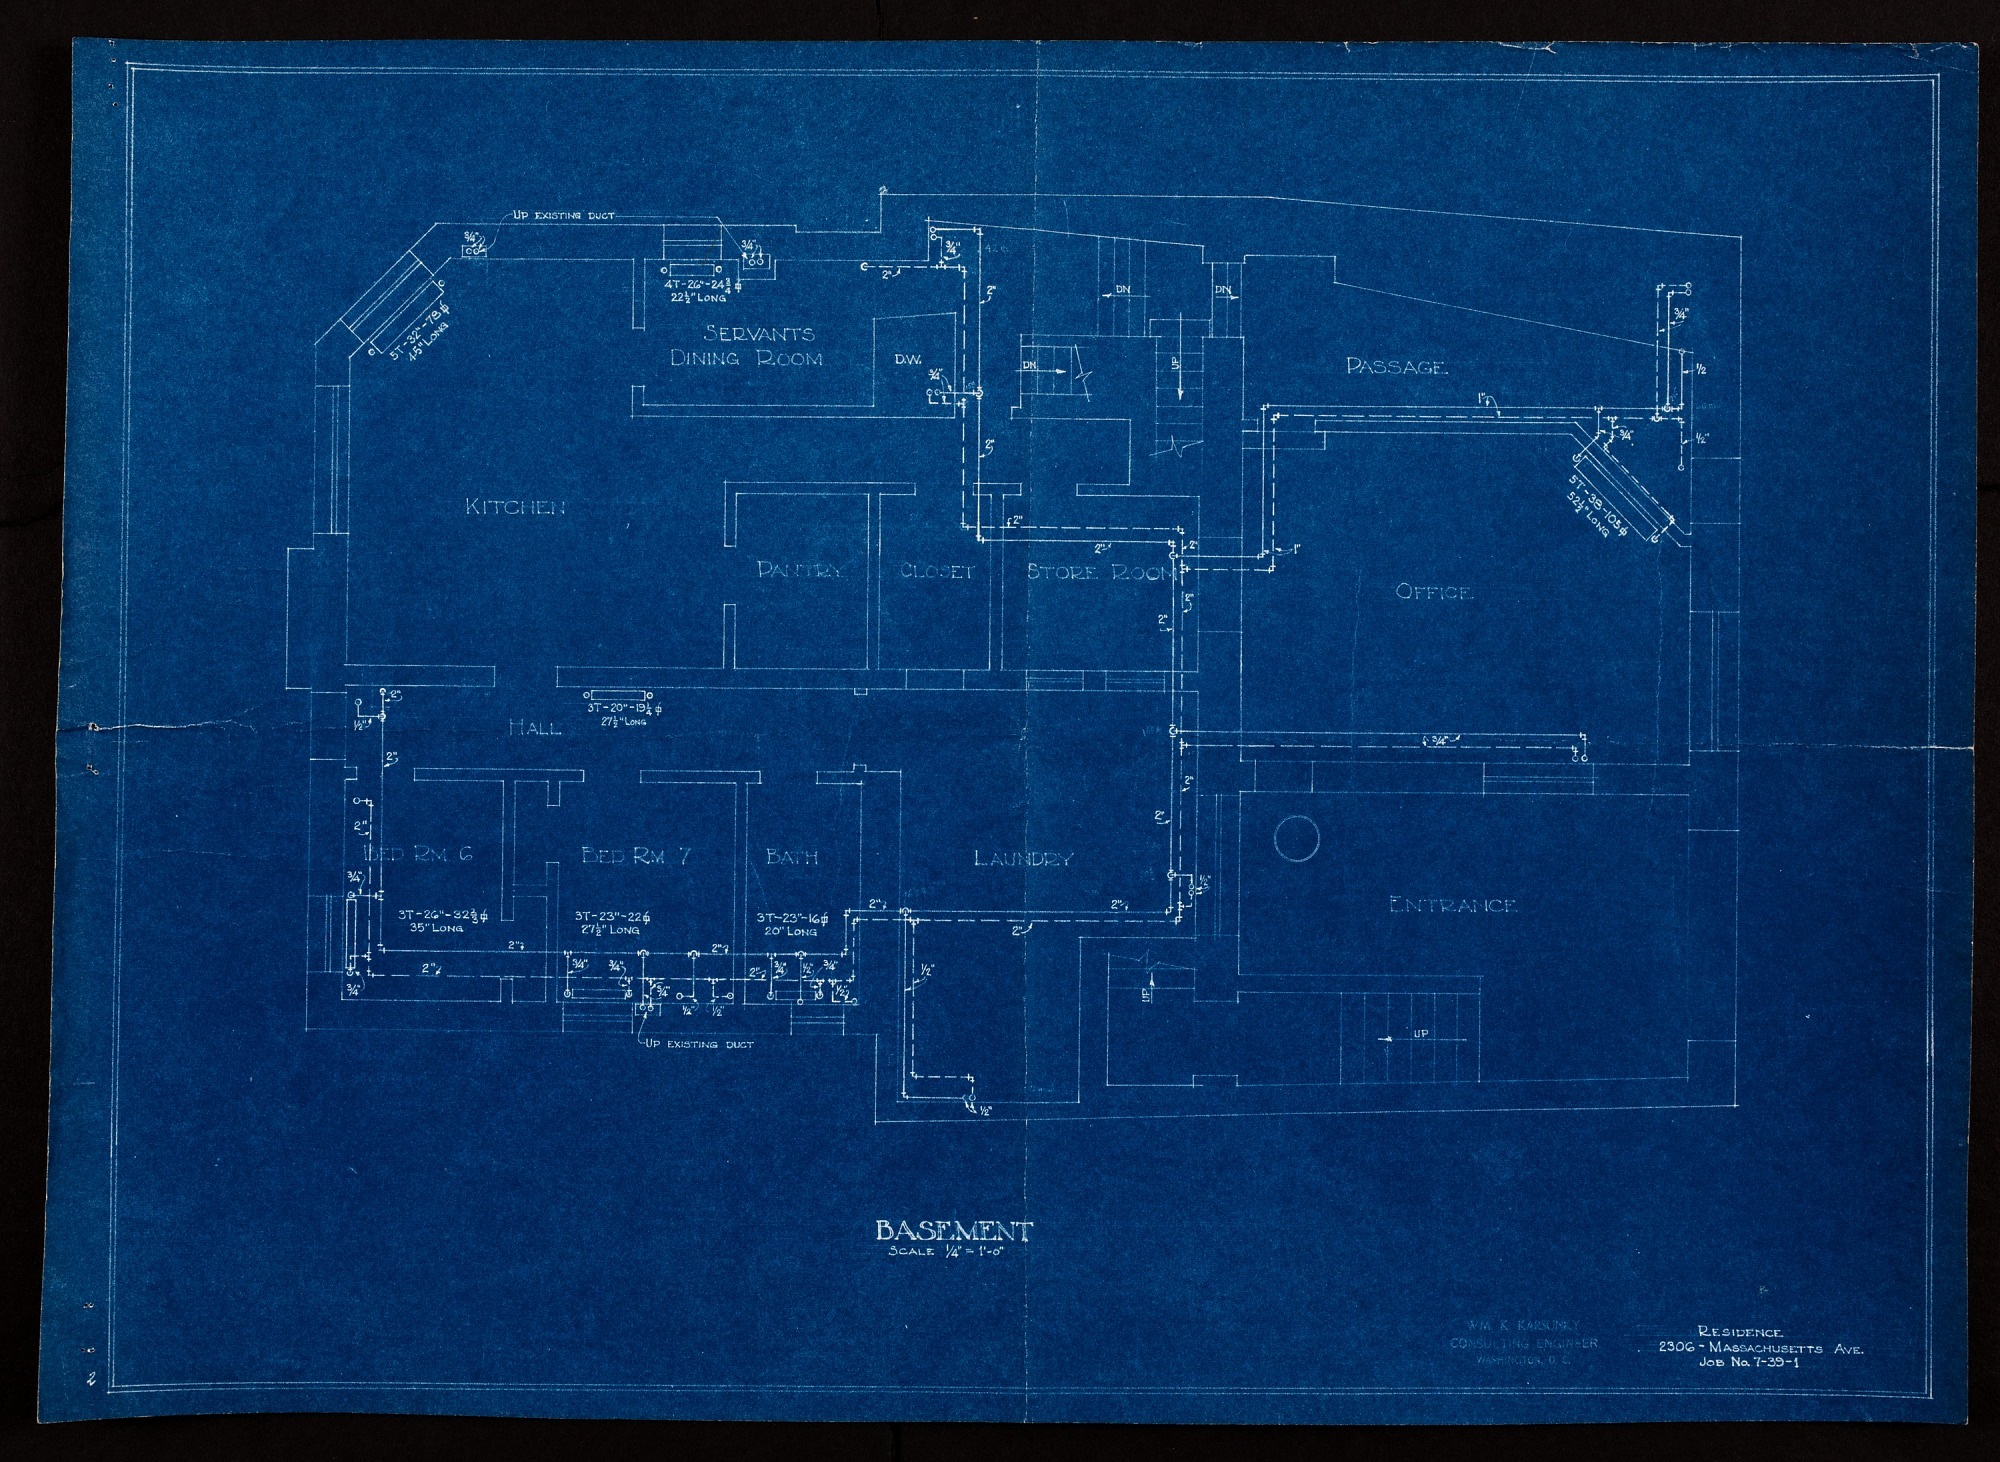 Blueprint drawing of the Basement of Alice Pike Barney's Studio House